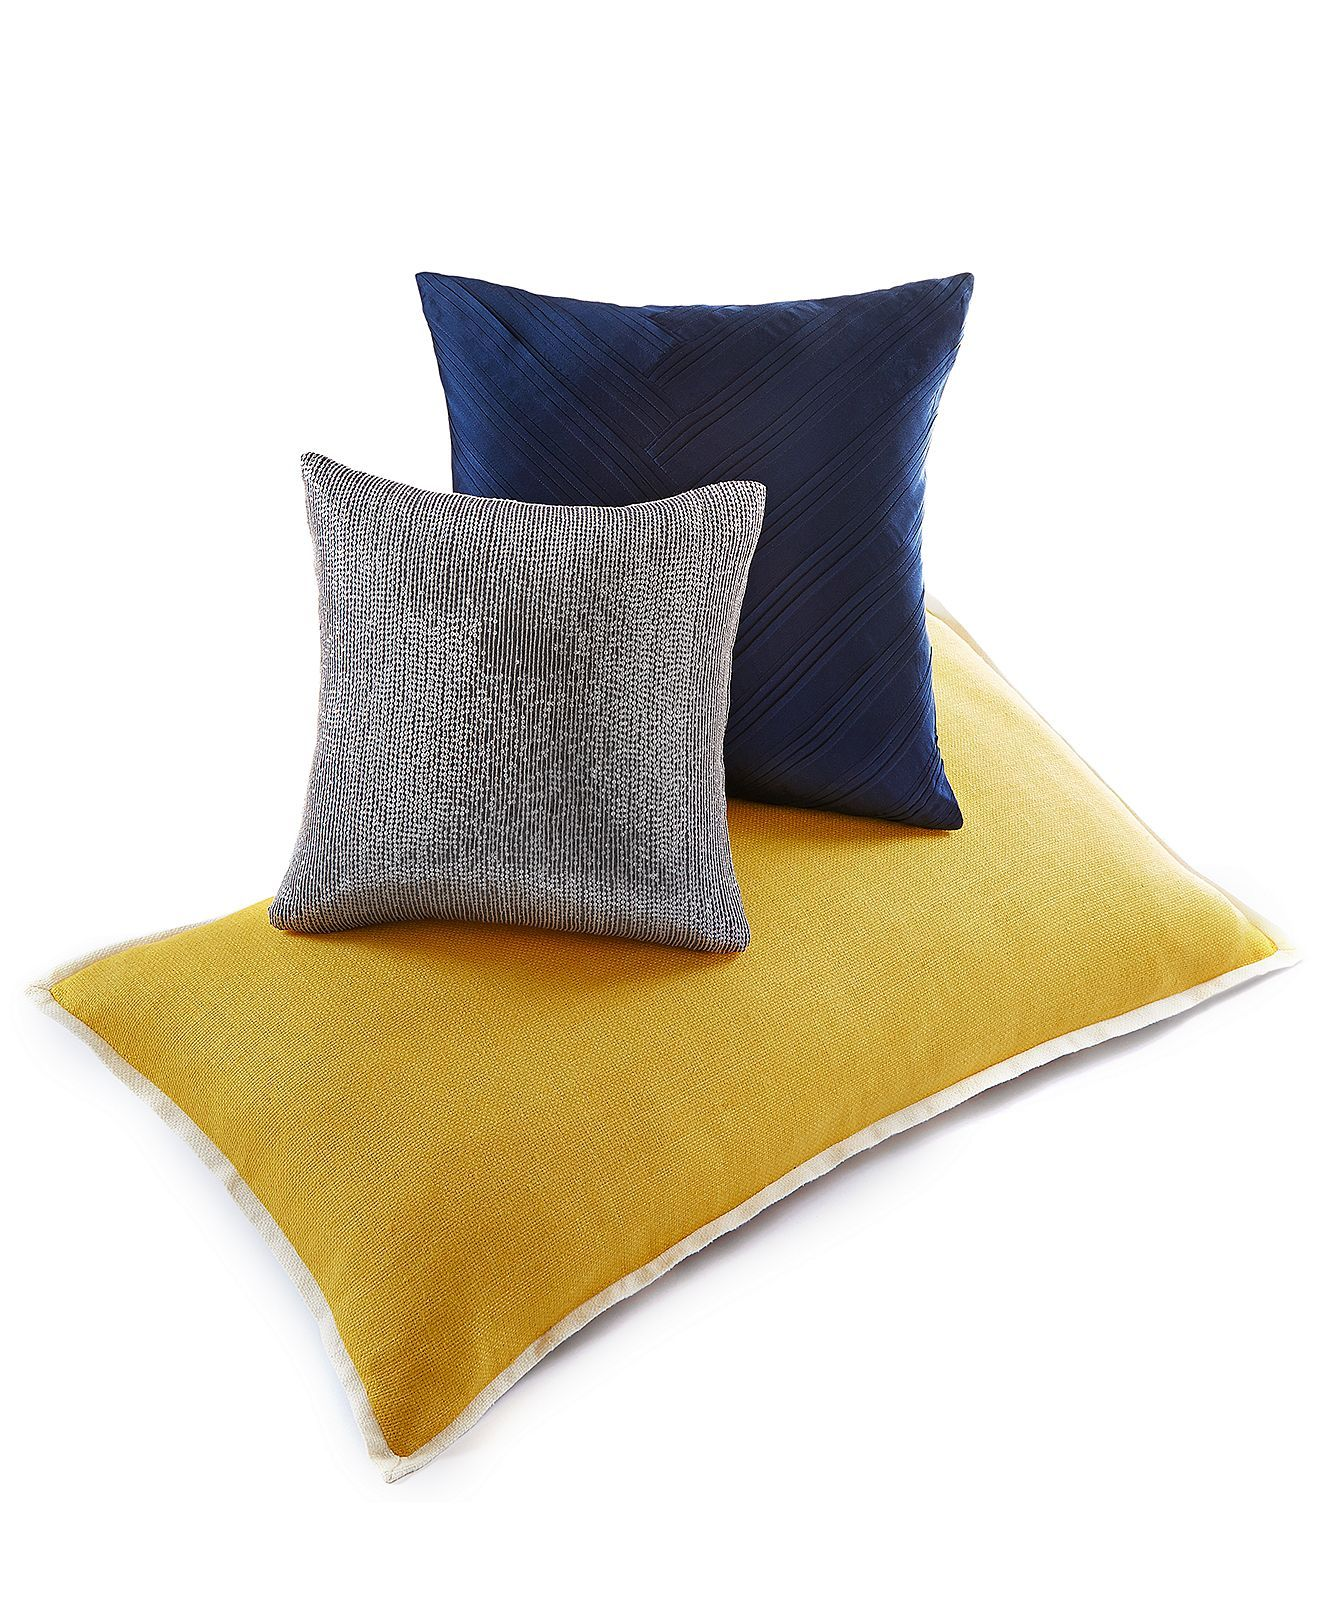 Macys Sofa Pillows Latest Wooden Set Designs In India Vince Camuto Home Berlin Decorative Pillow Collection